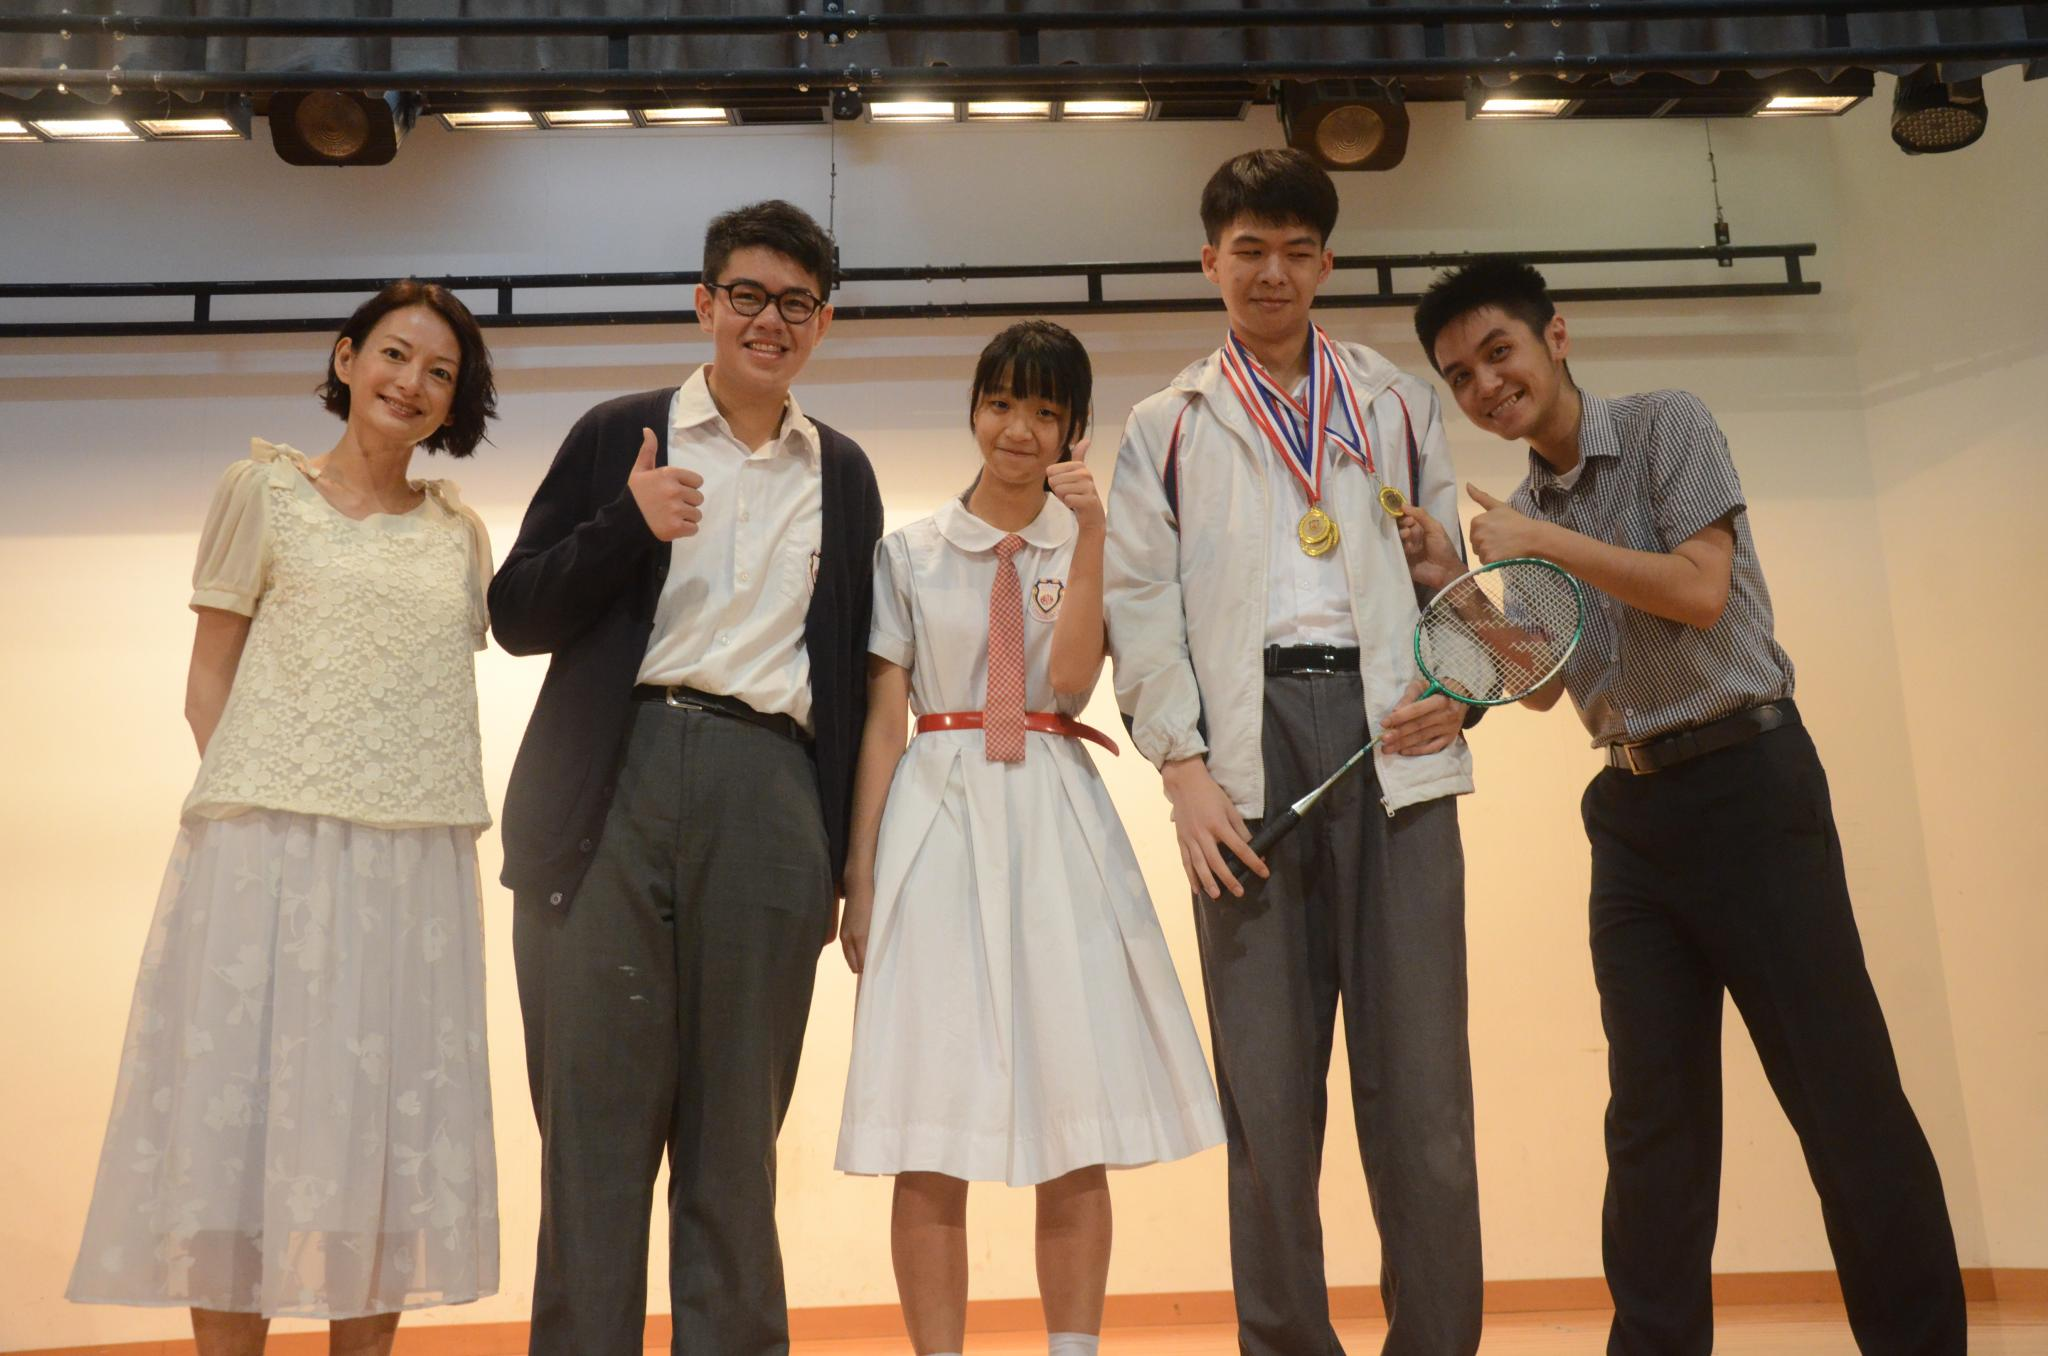 The representatives of House Leopard were awarded The Champion by our Vice Principal Ms. Siu.